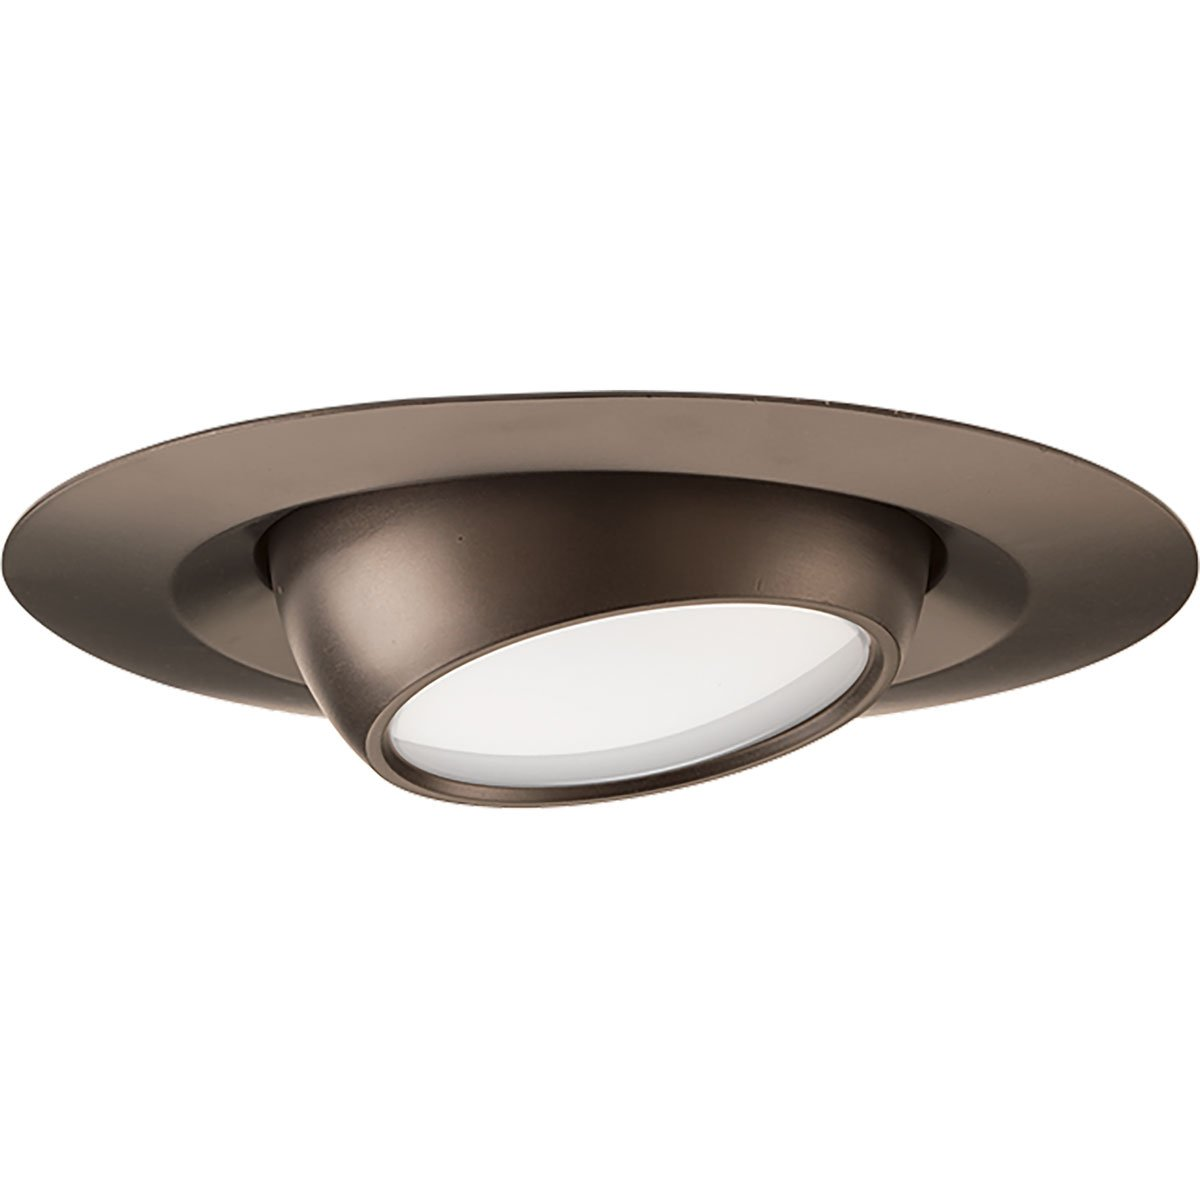 Progress Lighting P8046-20-30K Led Recessed 4-Inch LED Eyeball Trim, Antique Bronze